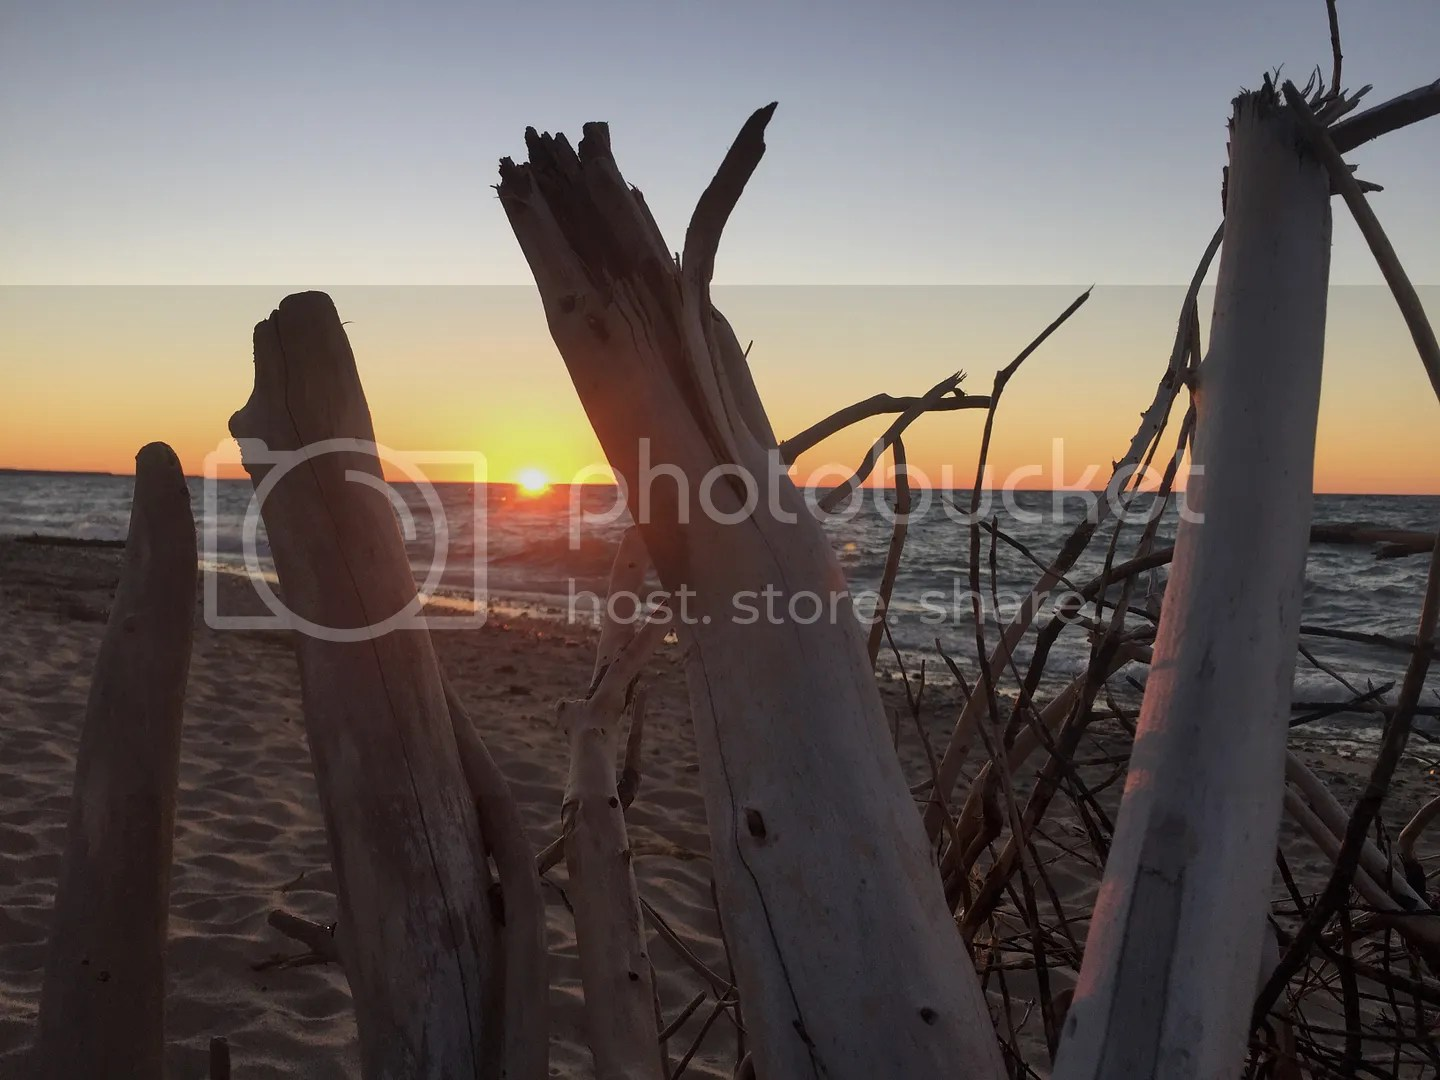 photo GM sunset driftwood_zpsfyv0qslp.jpg